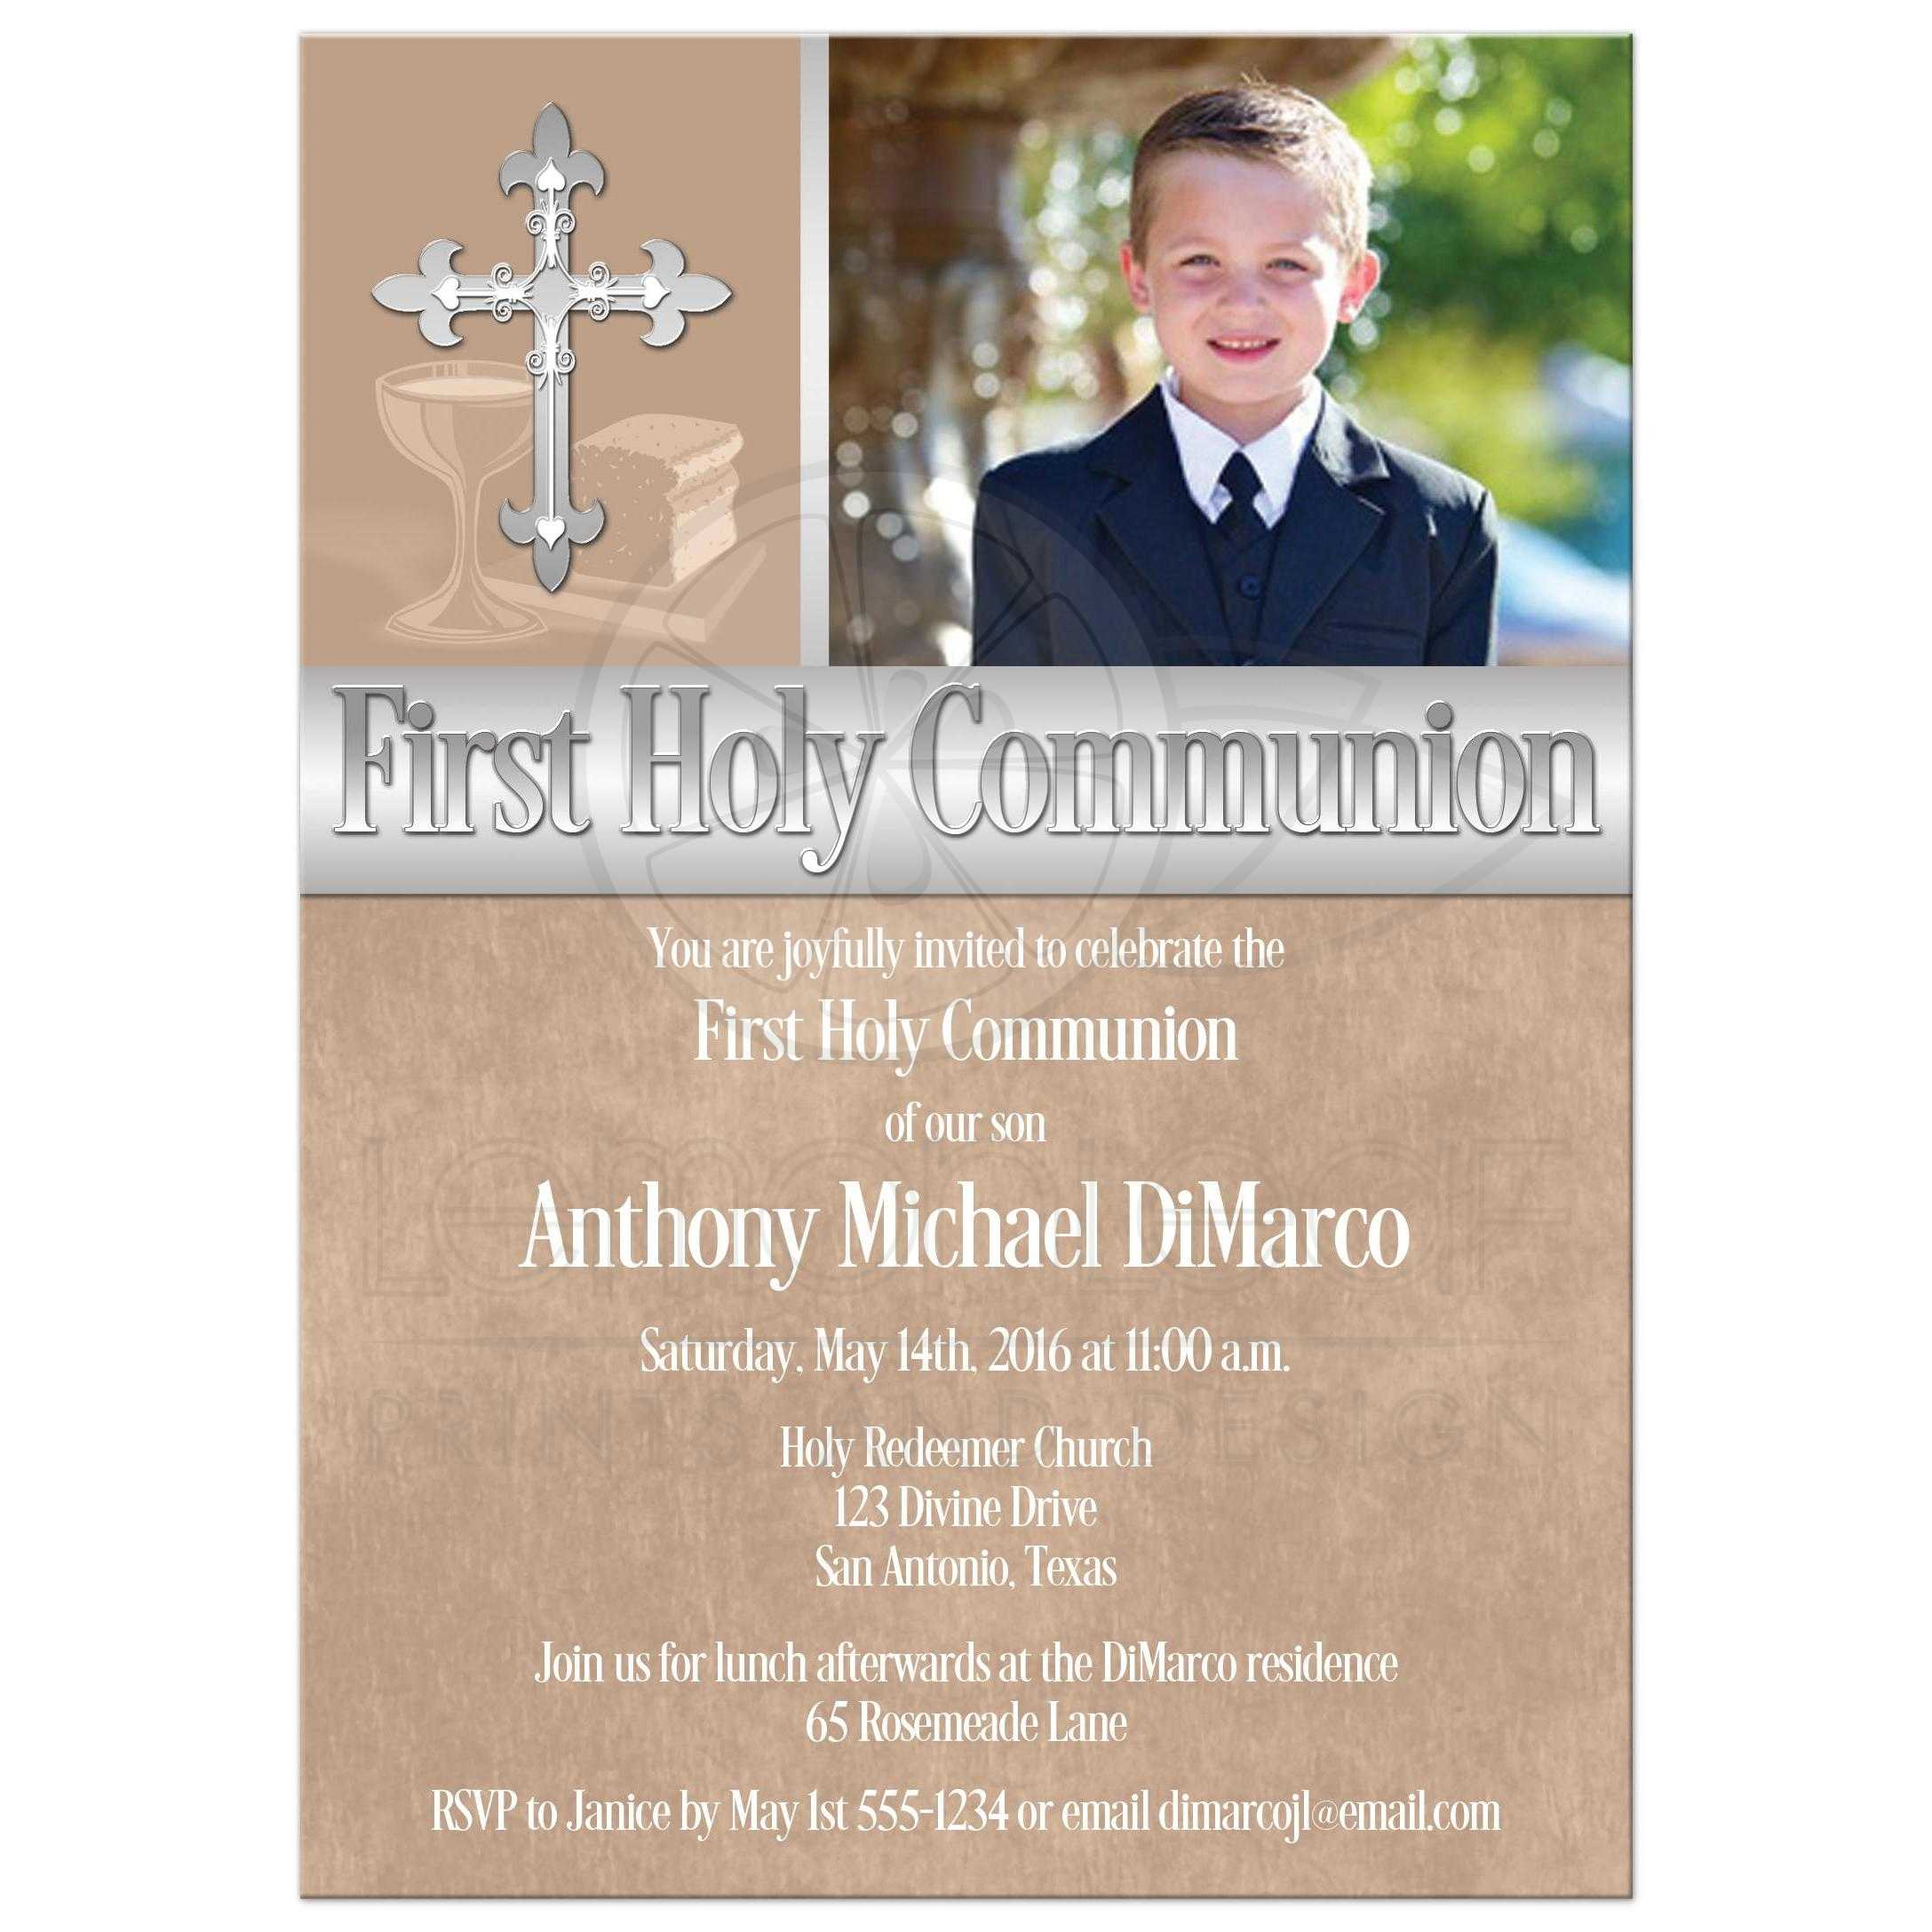 First holy communion invitation photo template brown great taupe brown first holy communion invitations with photo template and intricate silver cross for a solutioingenieria